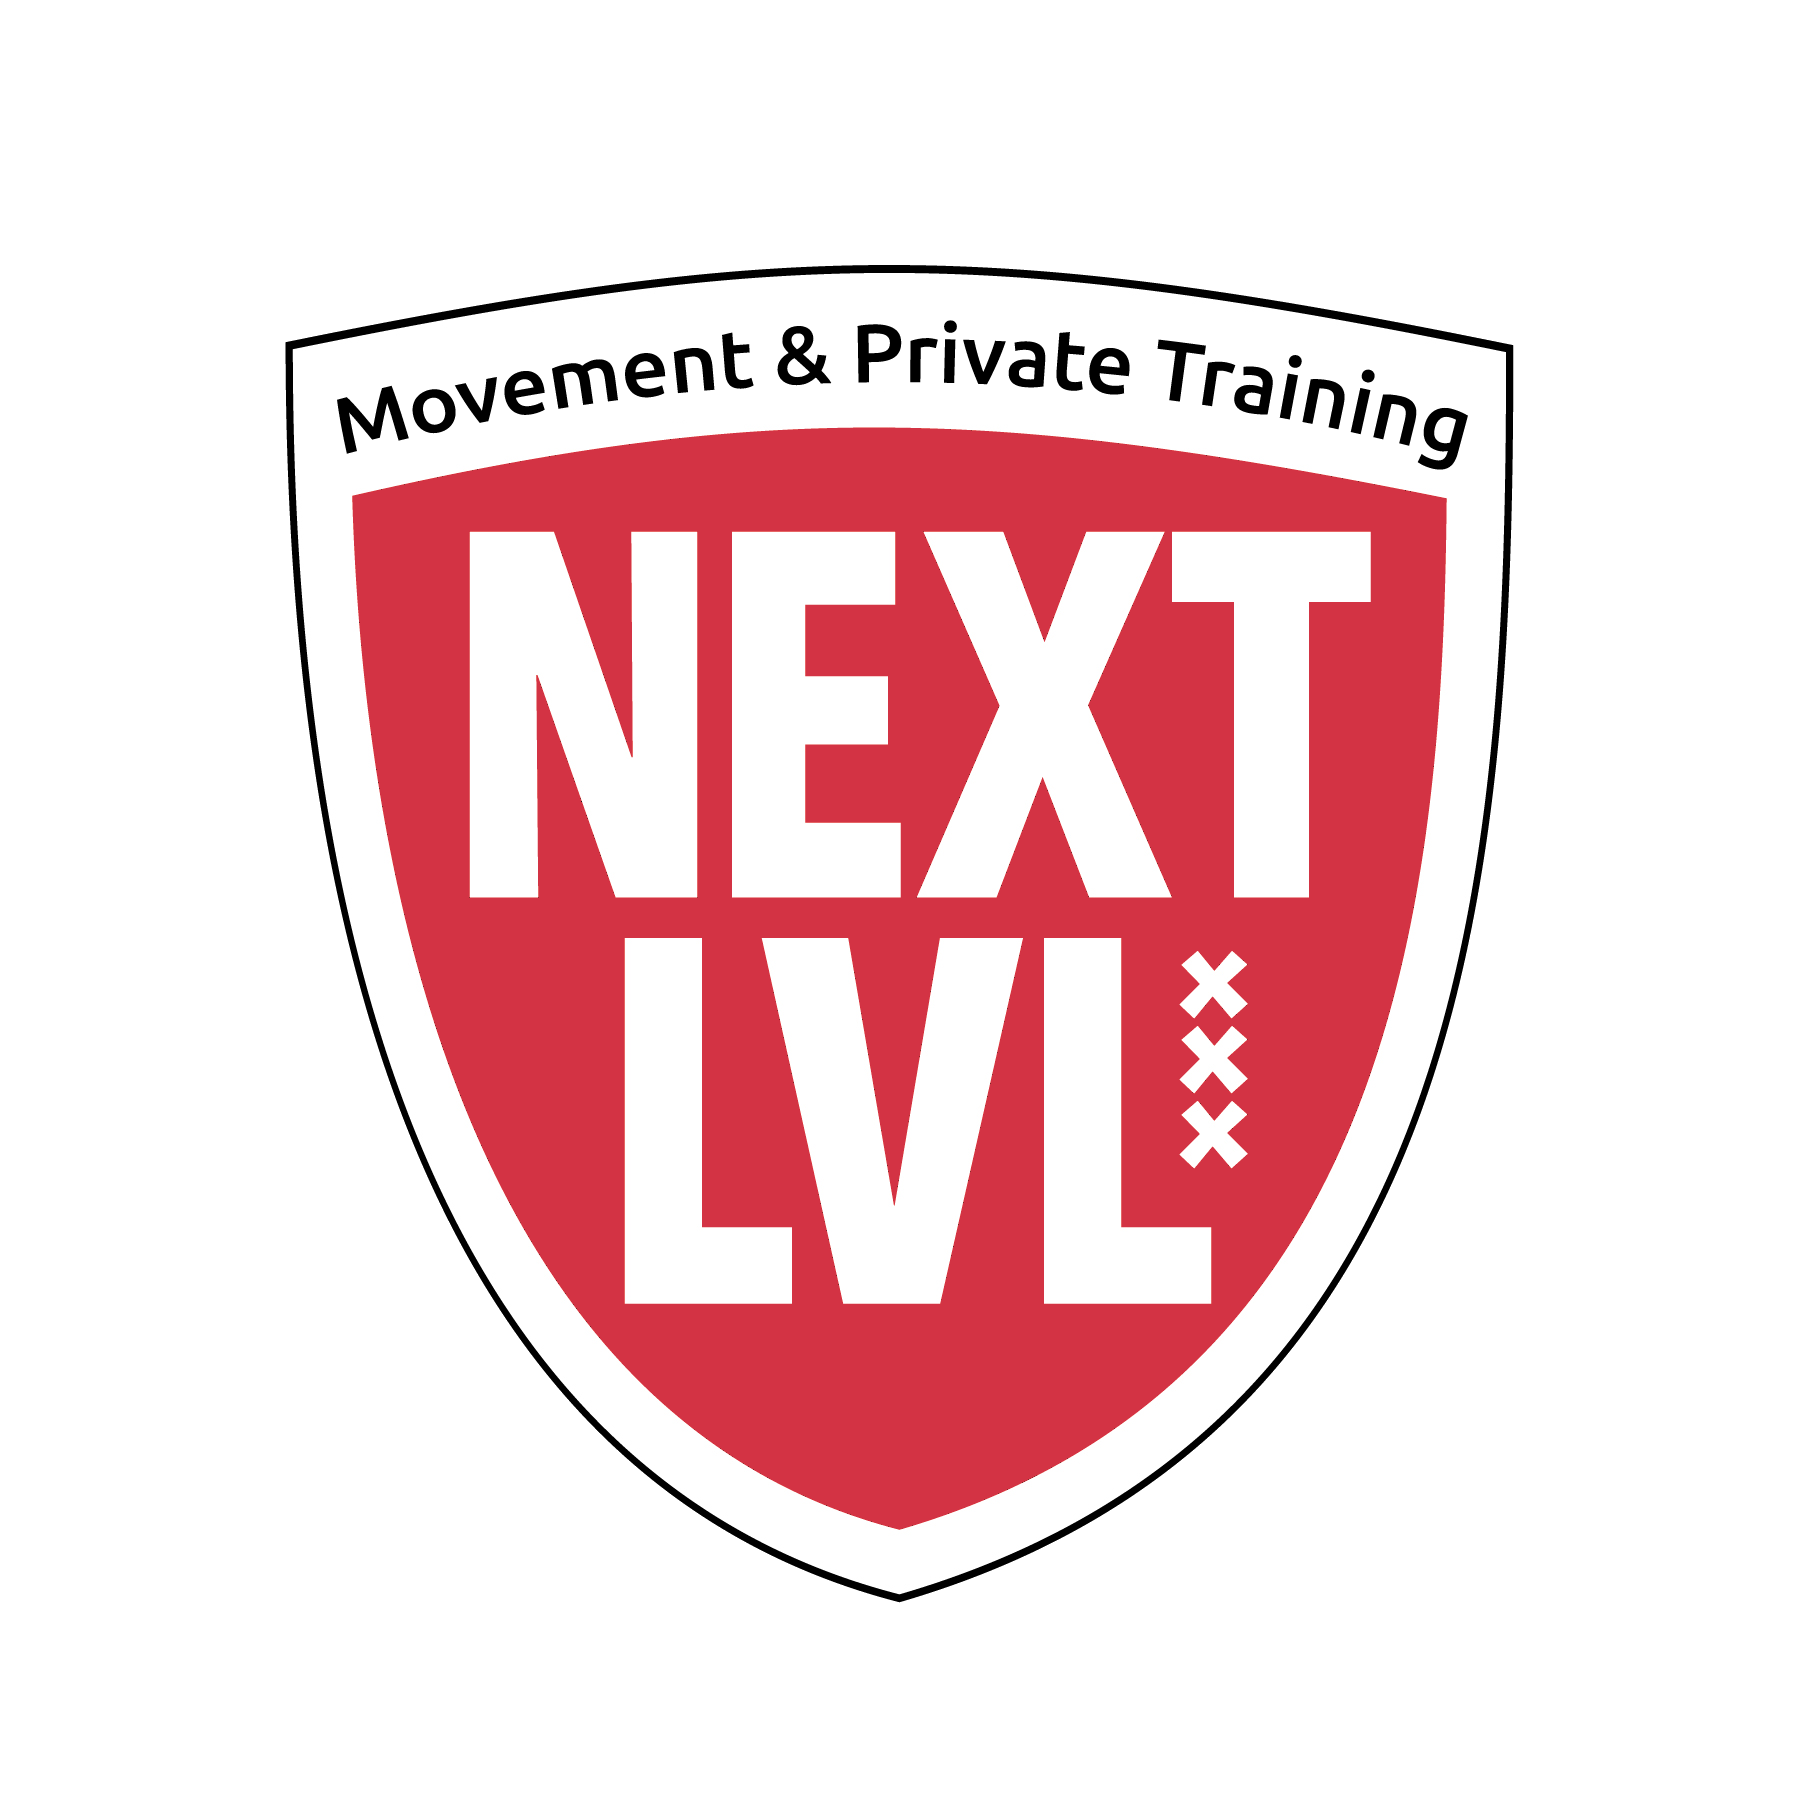 Next LVL bootcamp & personal training